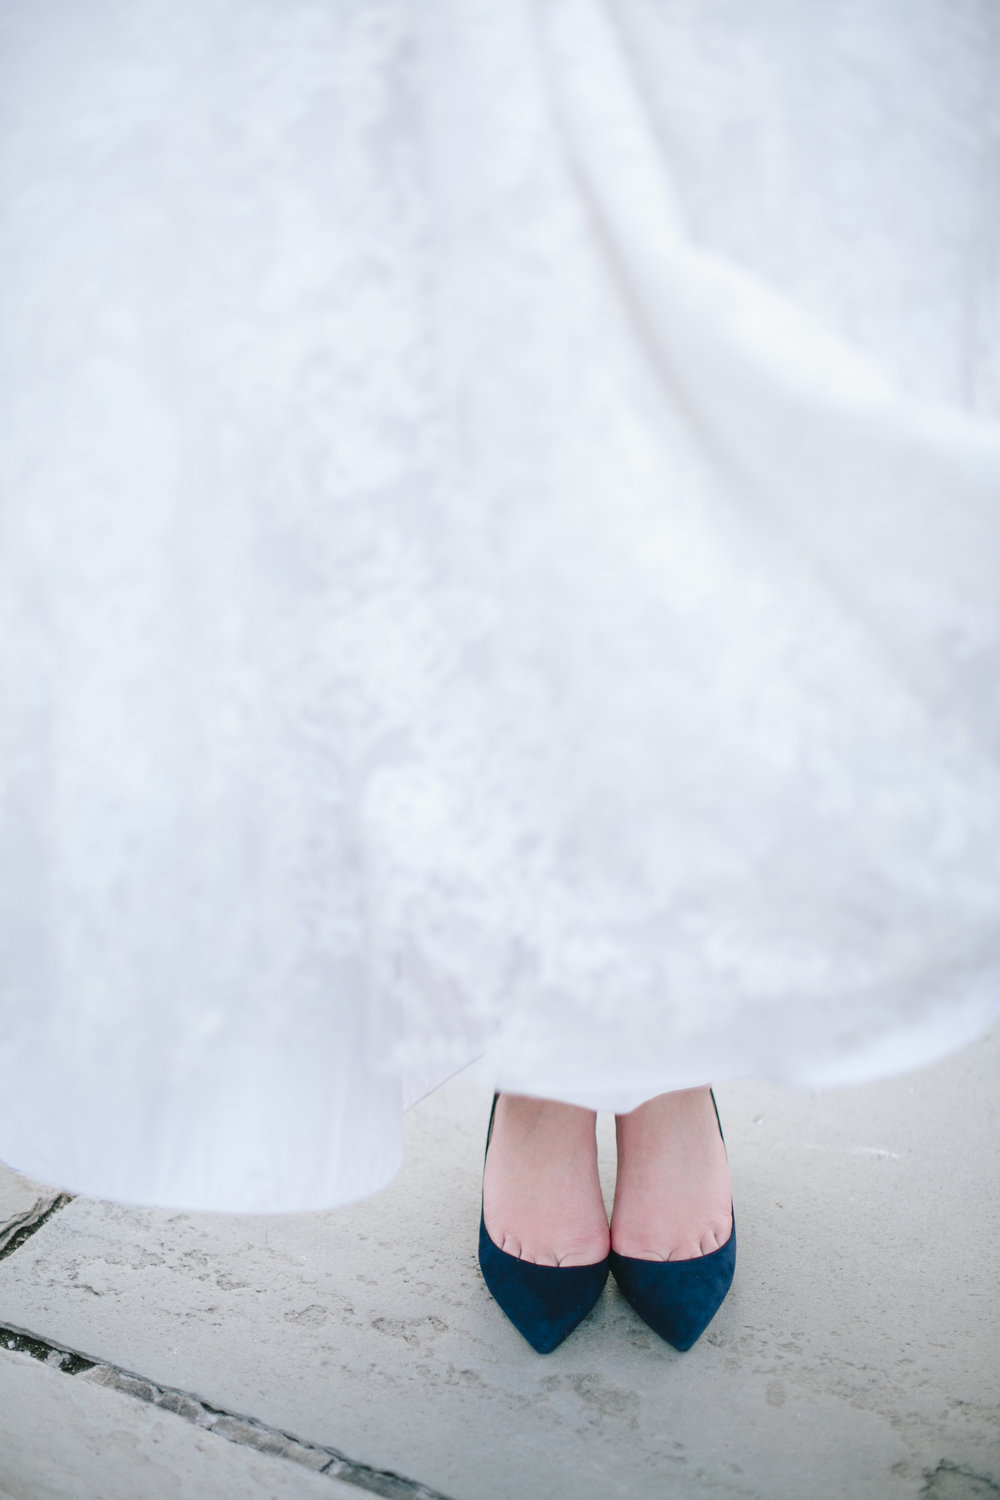 Teal Bridal Shoes.jpg